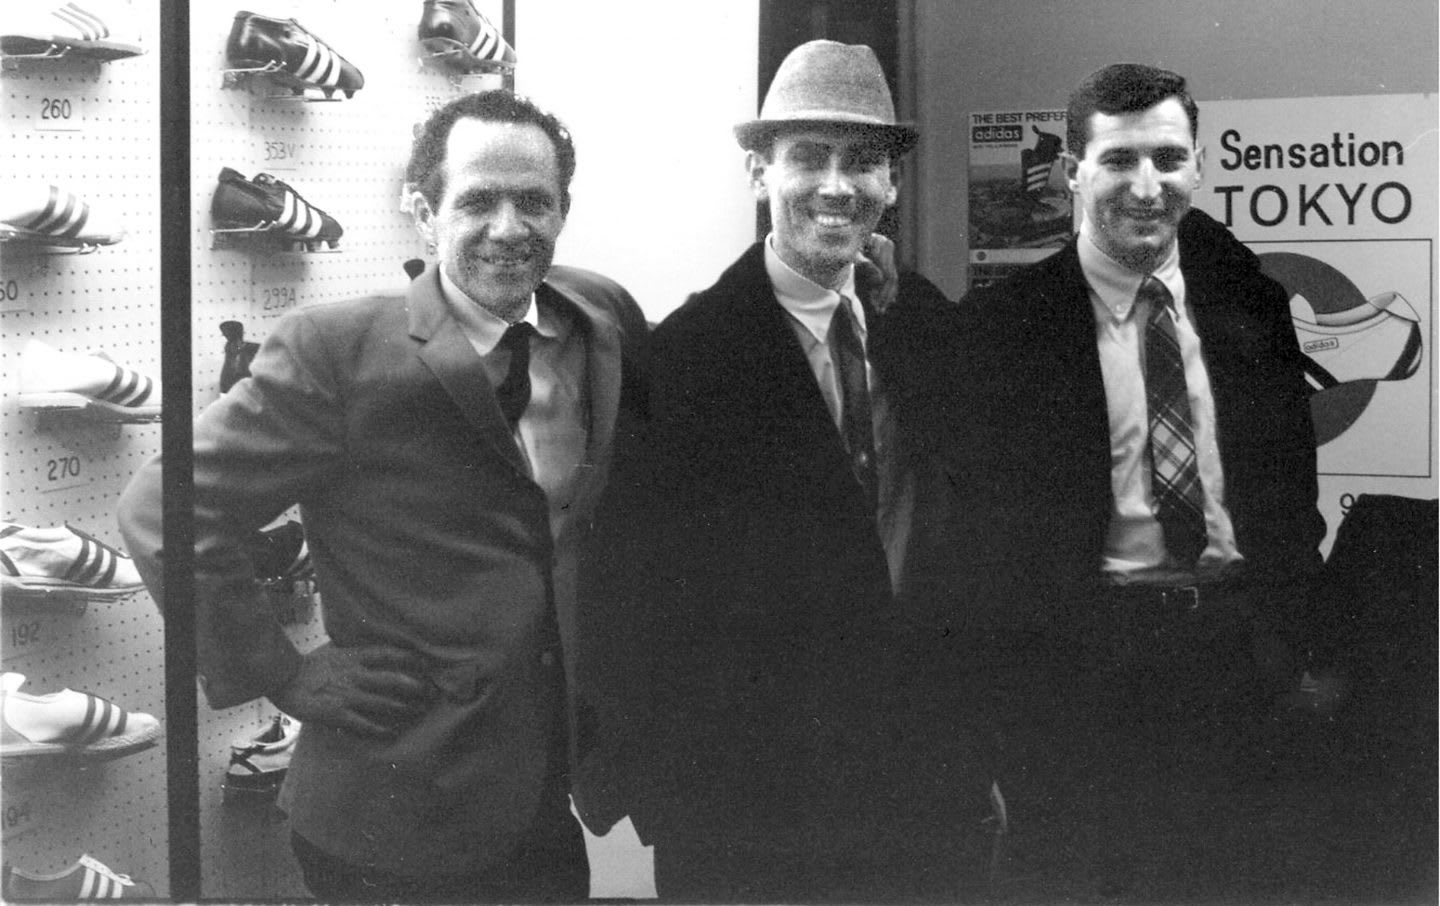 Black and white phtot of Horst Dassler with brothers Clifford and Chris Severn at the 1965 National Sporting Goods Association show in Chicago.